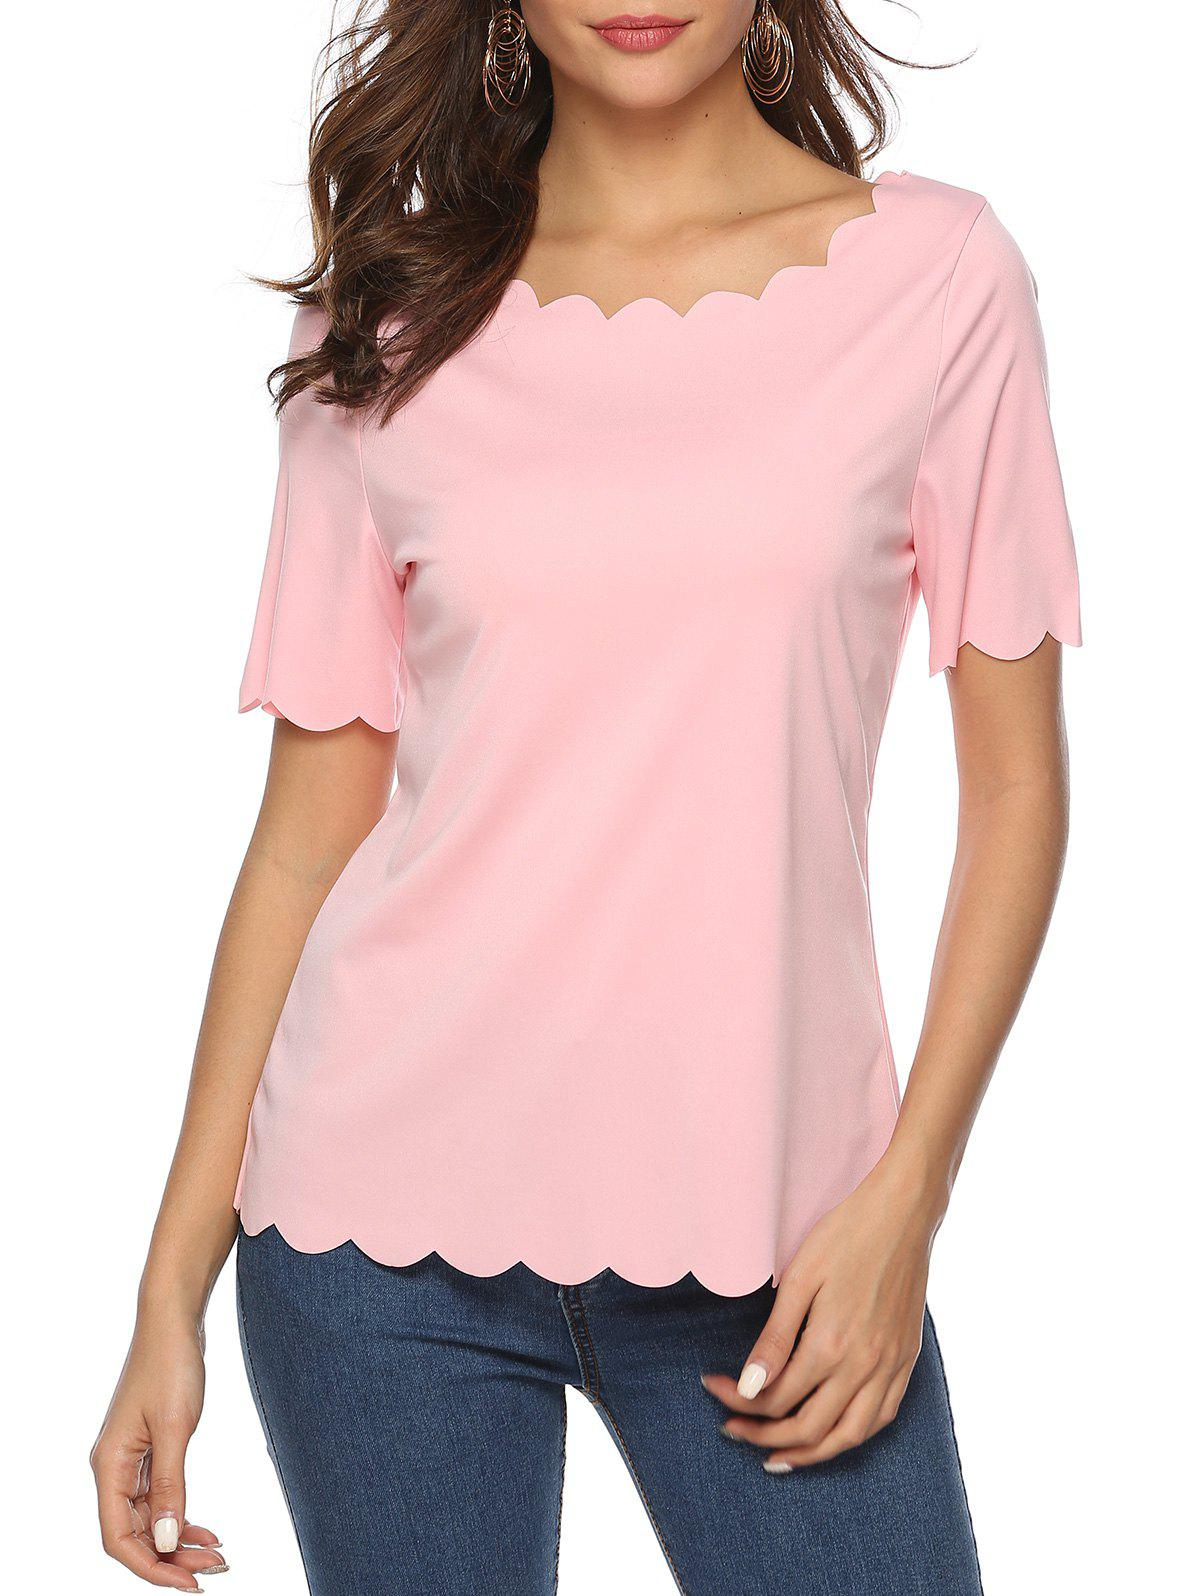 Fancy Scalloped Short Sleeve Tee